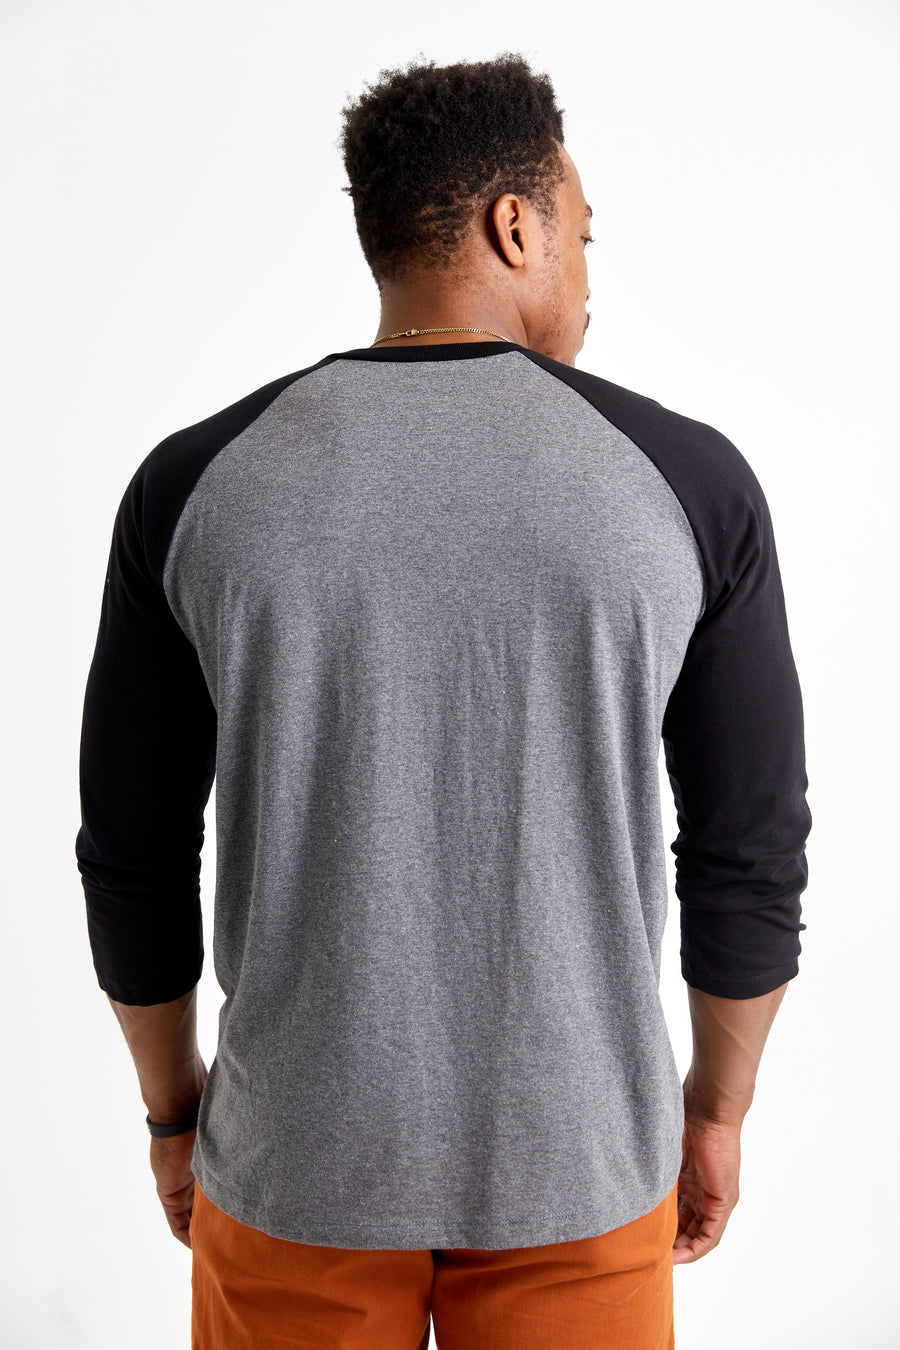 Hometurf - Raglan Tee (Heather Grey/Black)